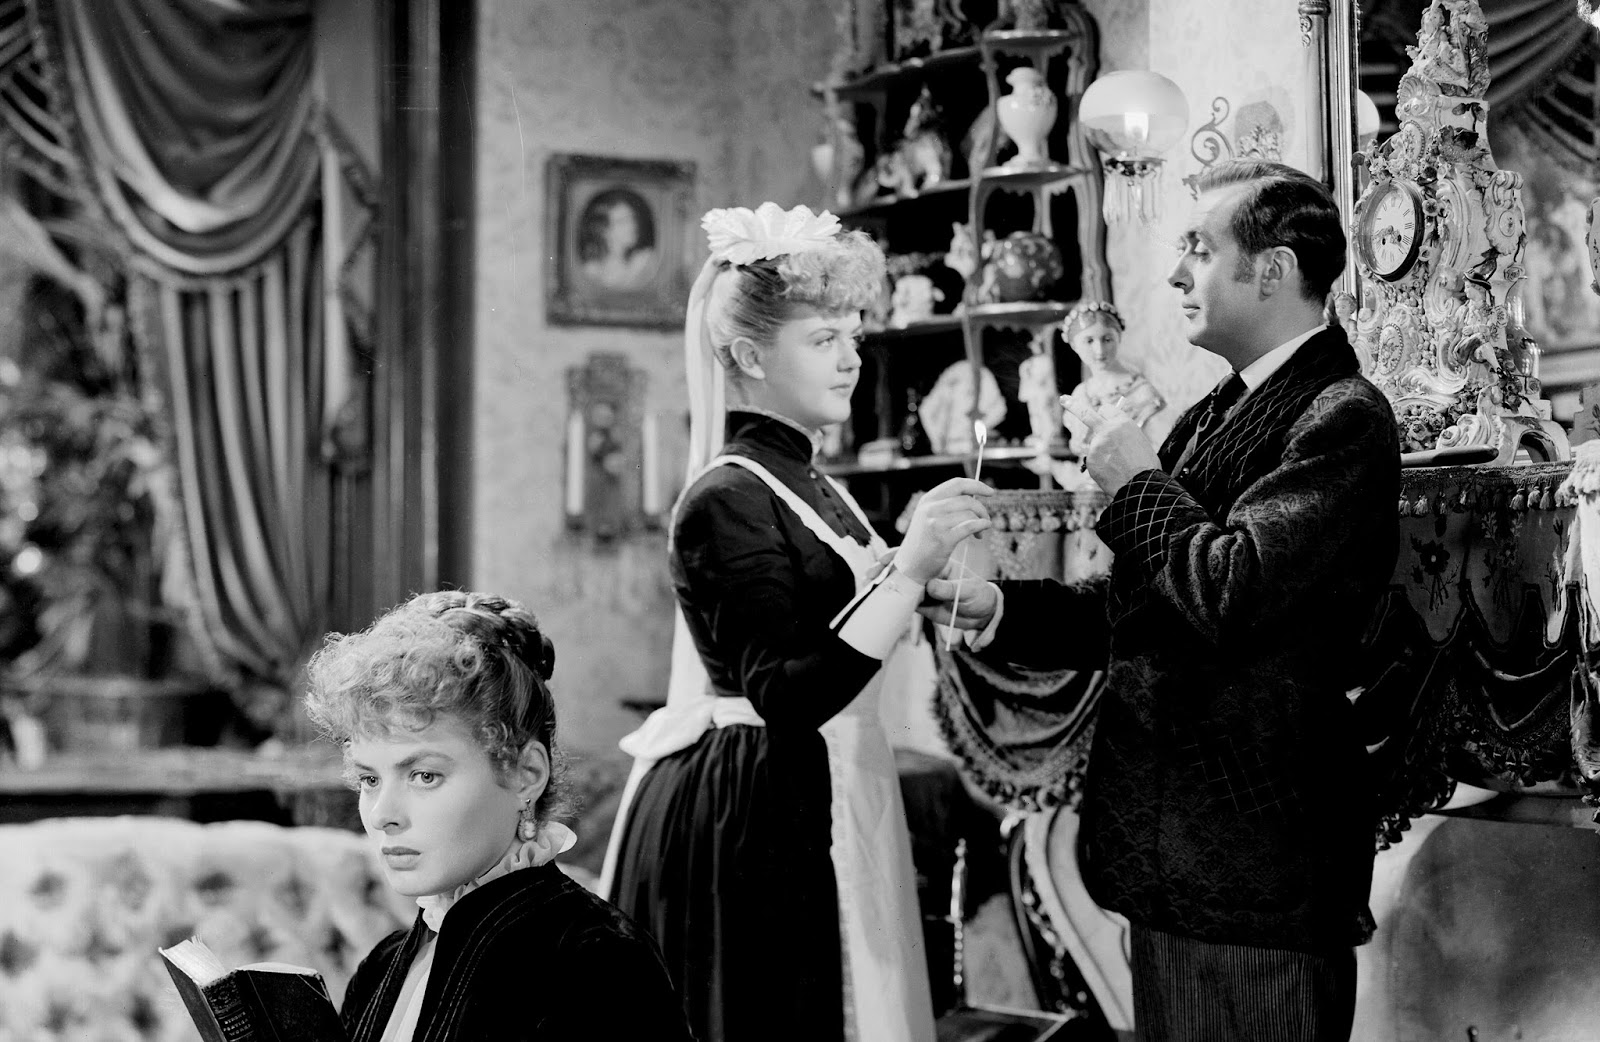 Bobby rivers tv angela lansbury happy birthday she got another best supporting actress oscar nomination for playing a dear but doomed young lady in mgms 1945 drama the picture of dorian gray thecheapjerseys Gallery